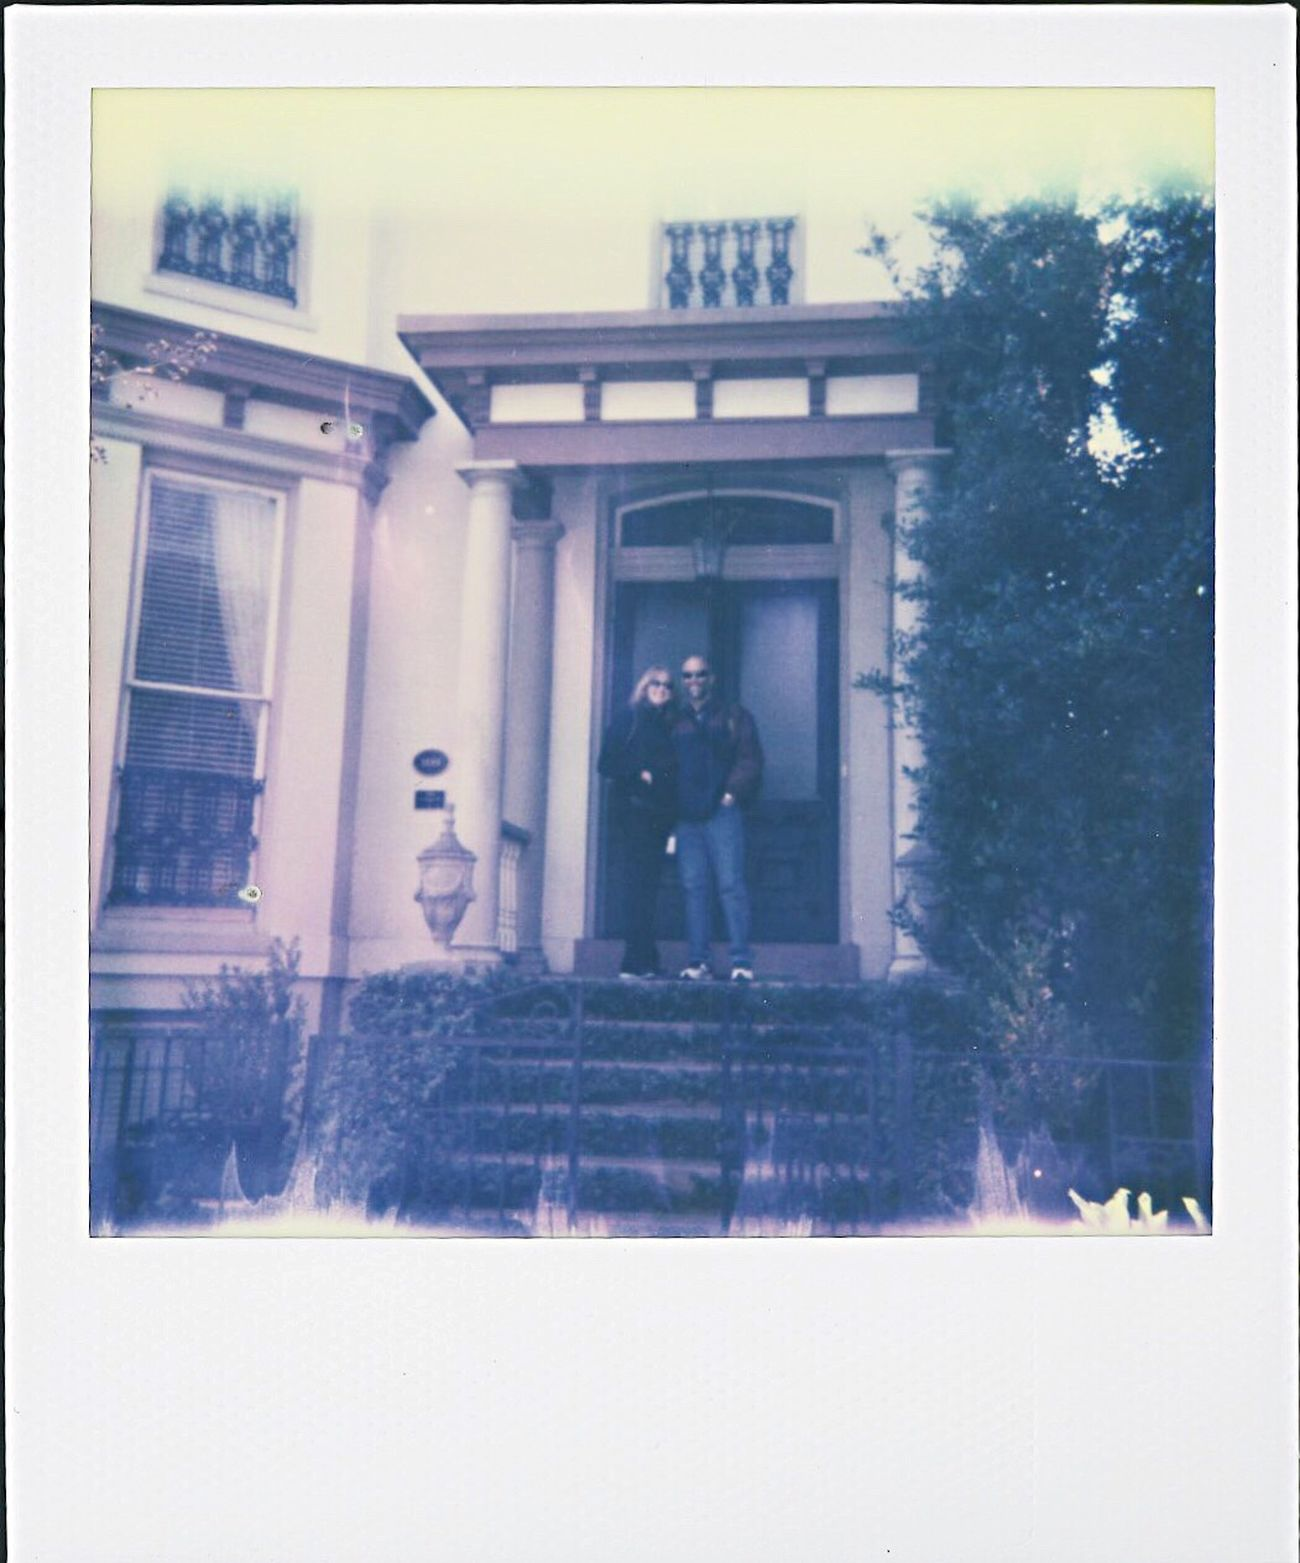 spring break house, mom and dad Savannah Georgia Forsyth Park Polaroid Polaroid 600 Polaroid Photography Polaroid Photographer